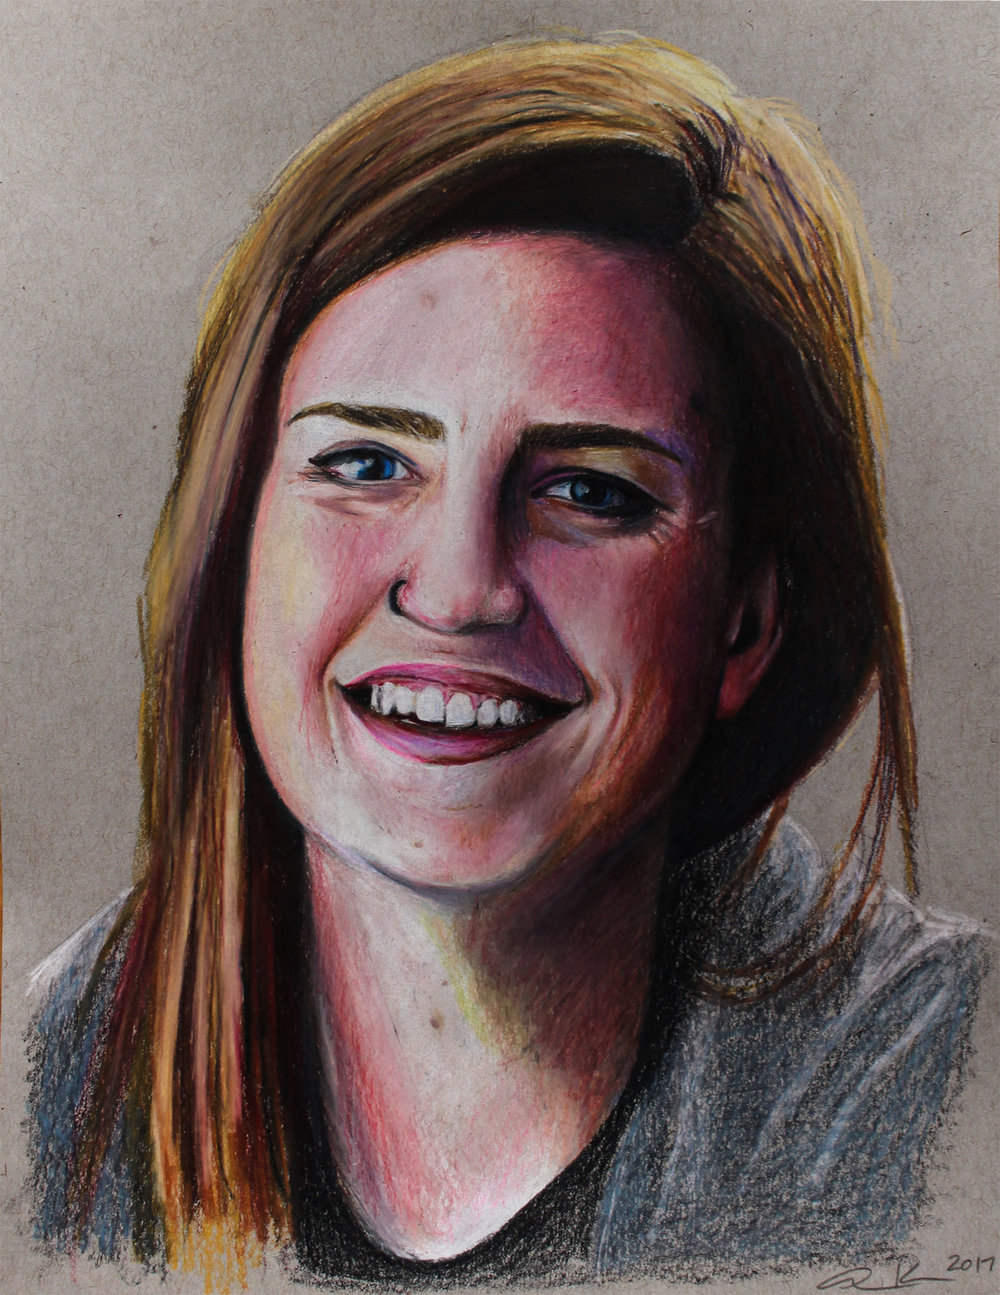 """Kaitlyn, 2017, colored pencils on toned paper, 8.5x11"""""""